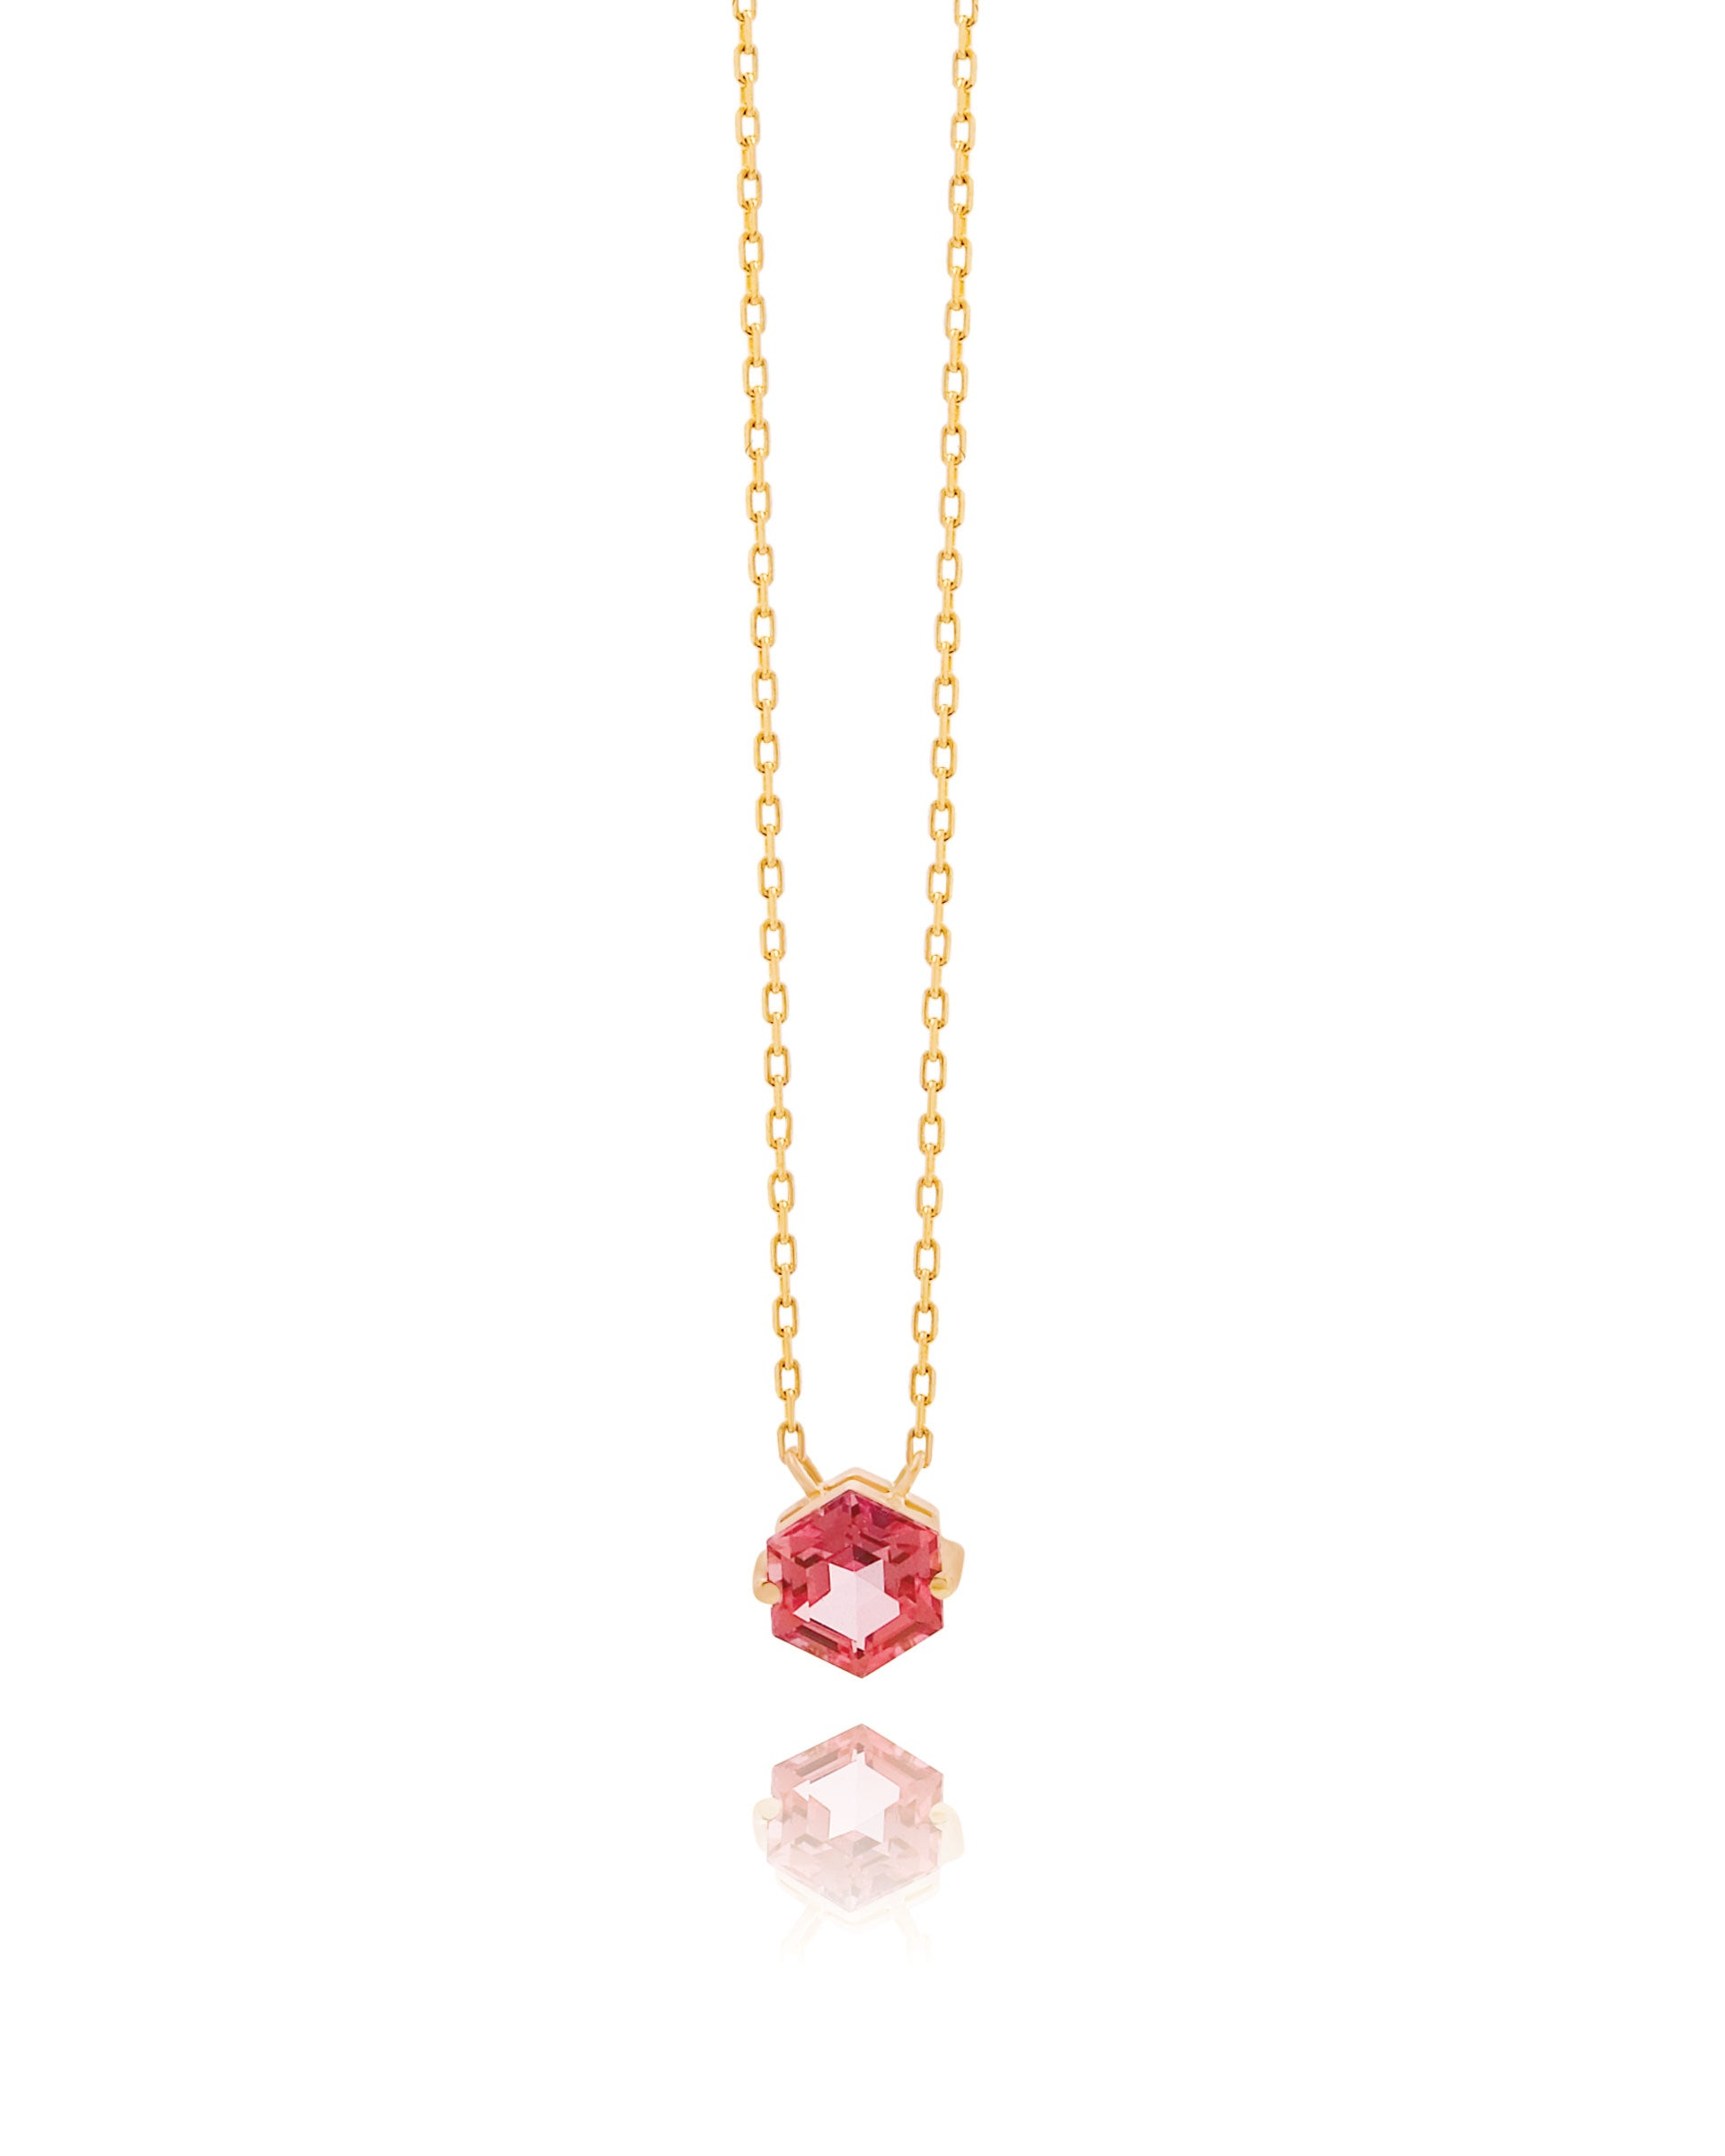 14K YELLOW GOLD PETITE SALMON TOPAZ HEXAGON NECKLACE